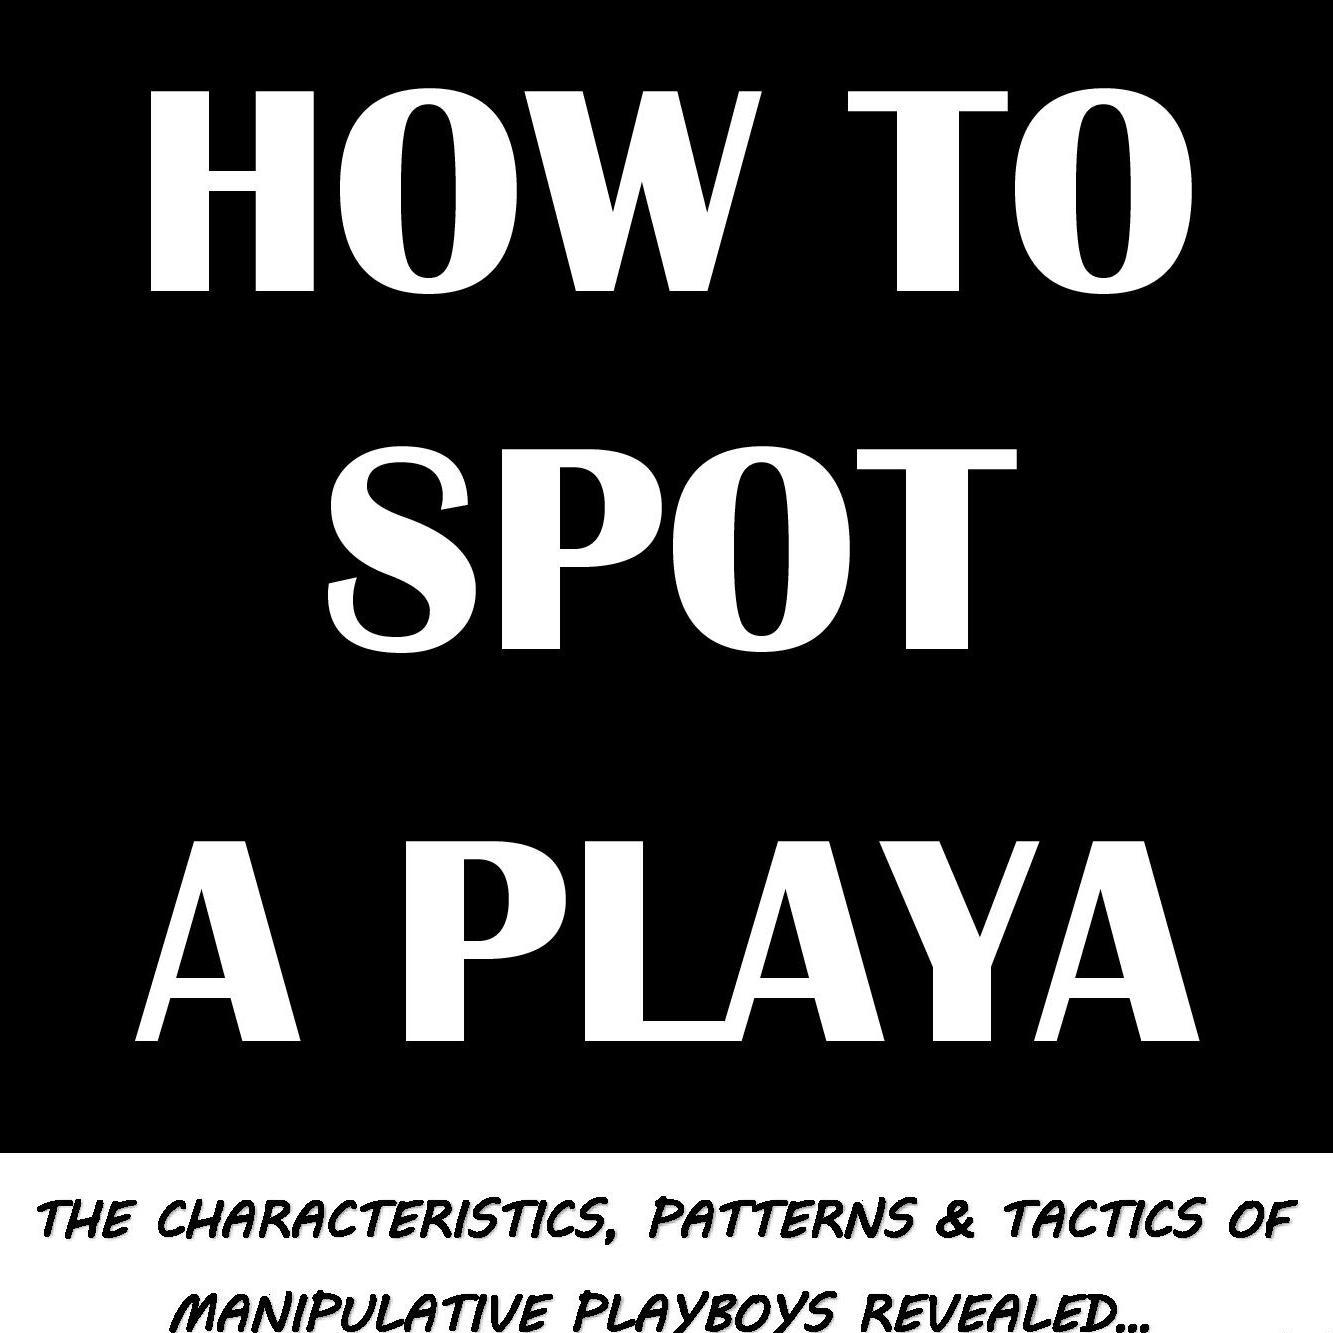 How to be a playerette